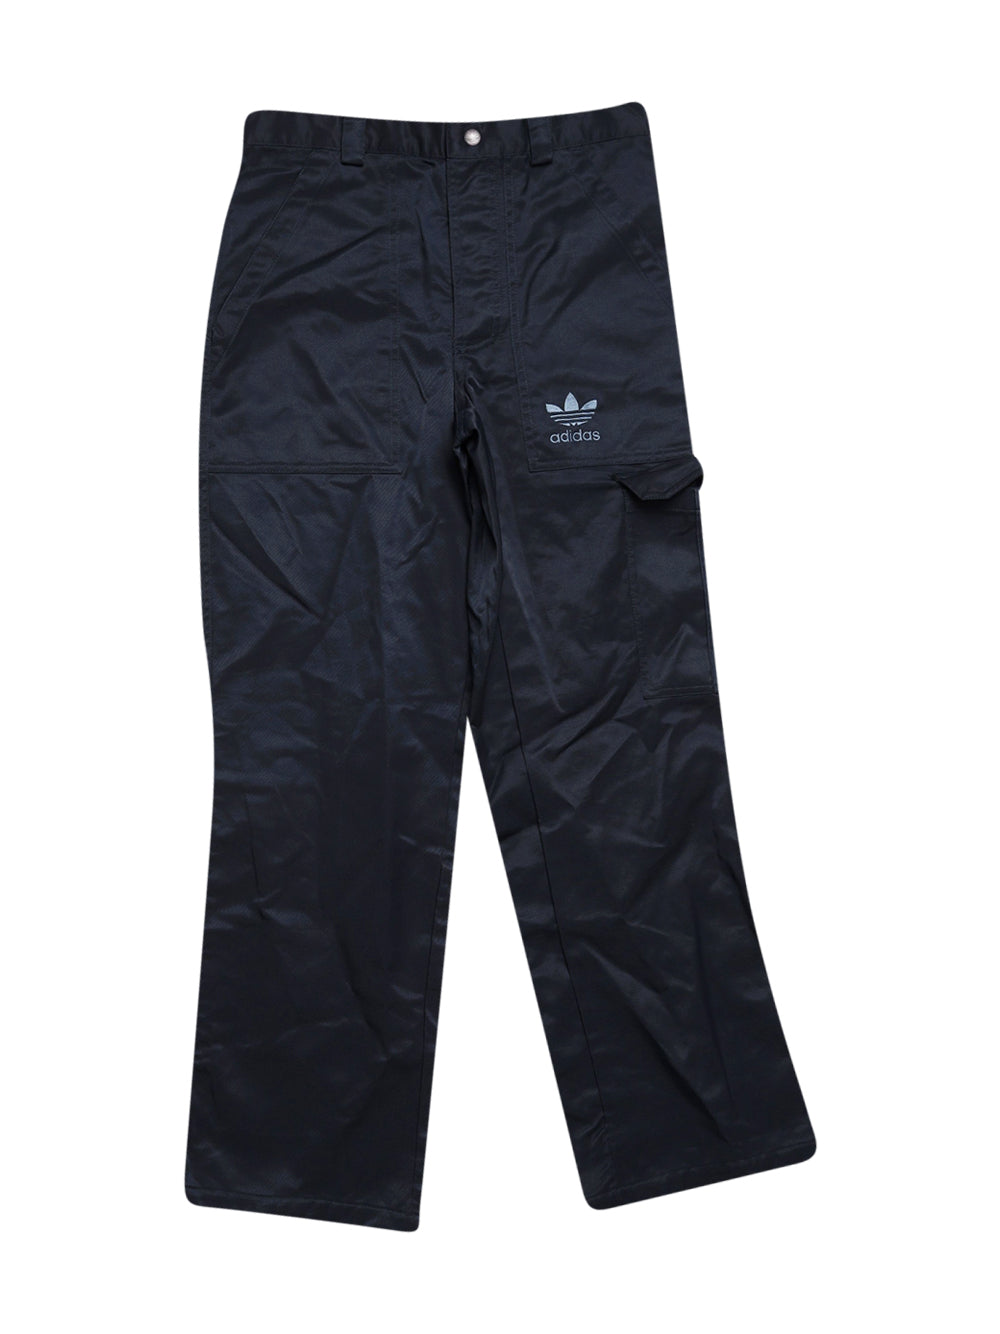 Front photo of Preloved Adidas Blue Man's trousers - size 34/XS